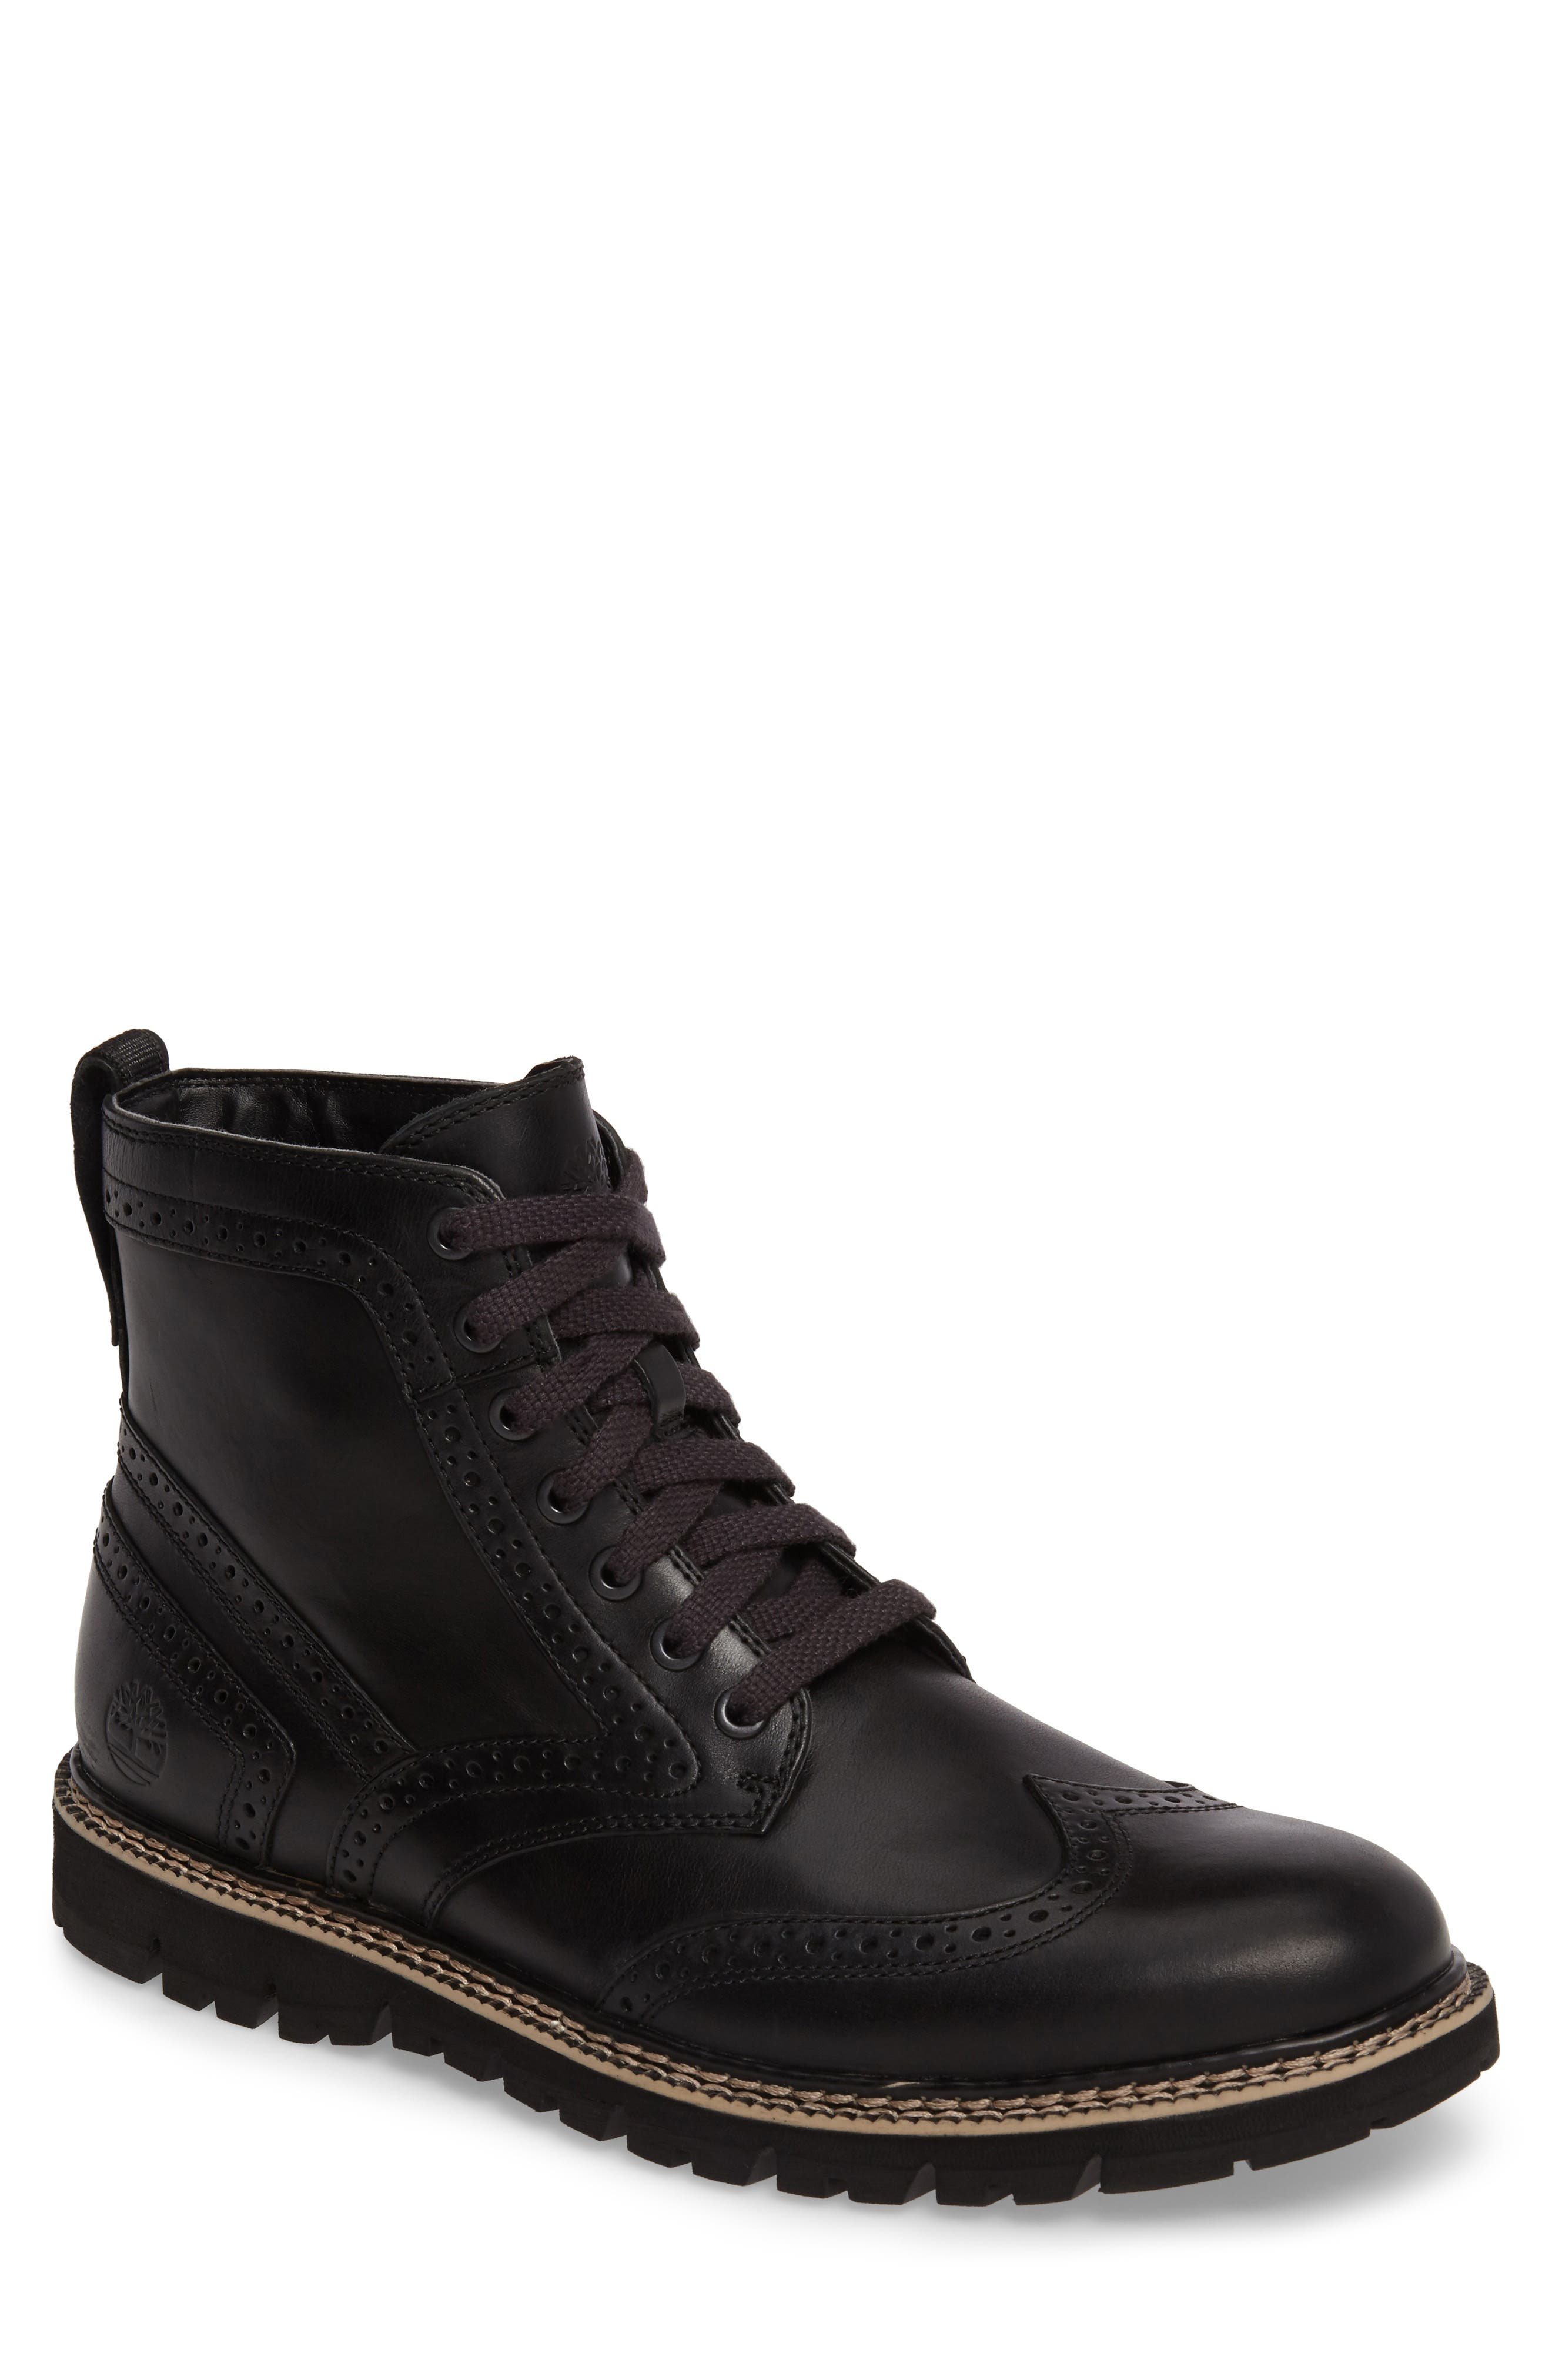 Britton Hill Wingtip Boot,                             Main thumbnail 1, color,